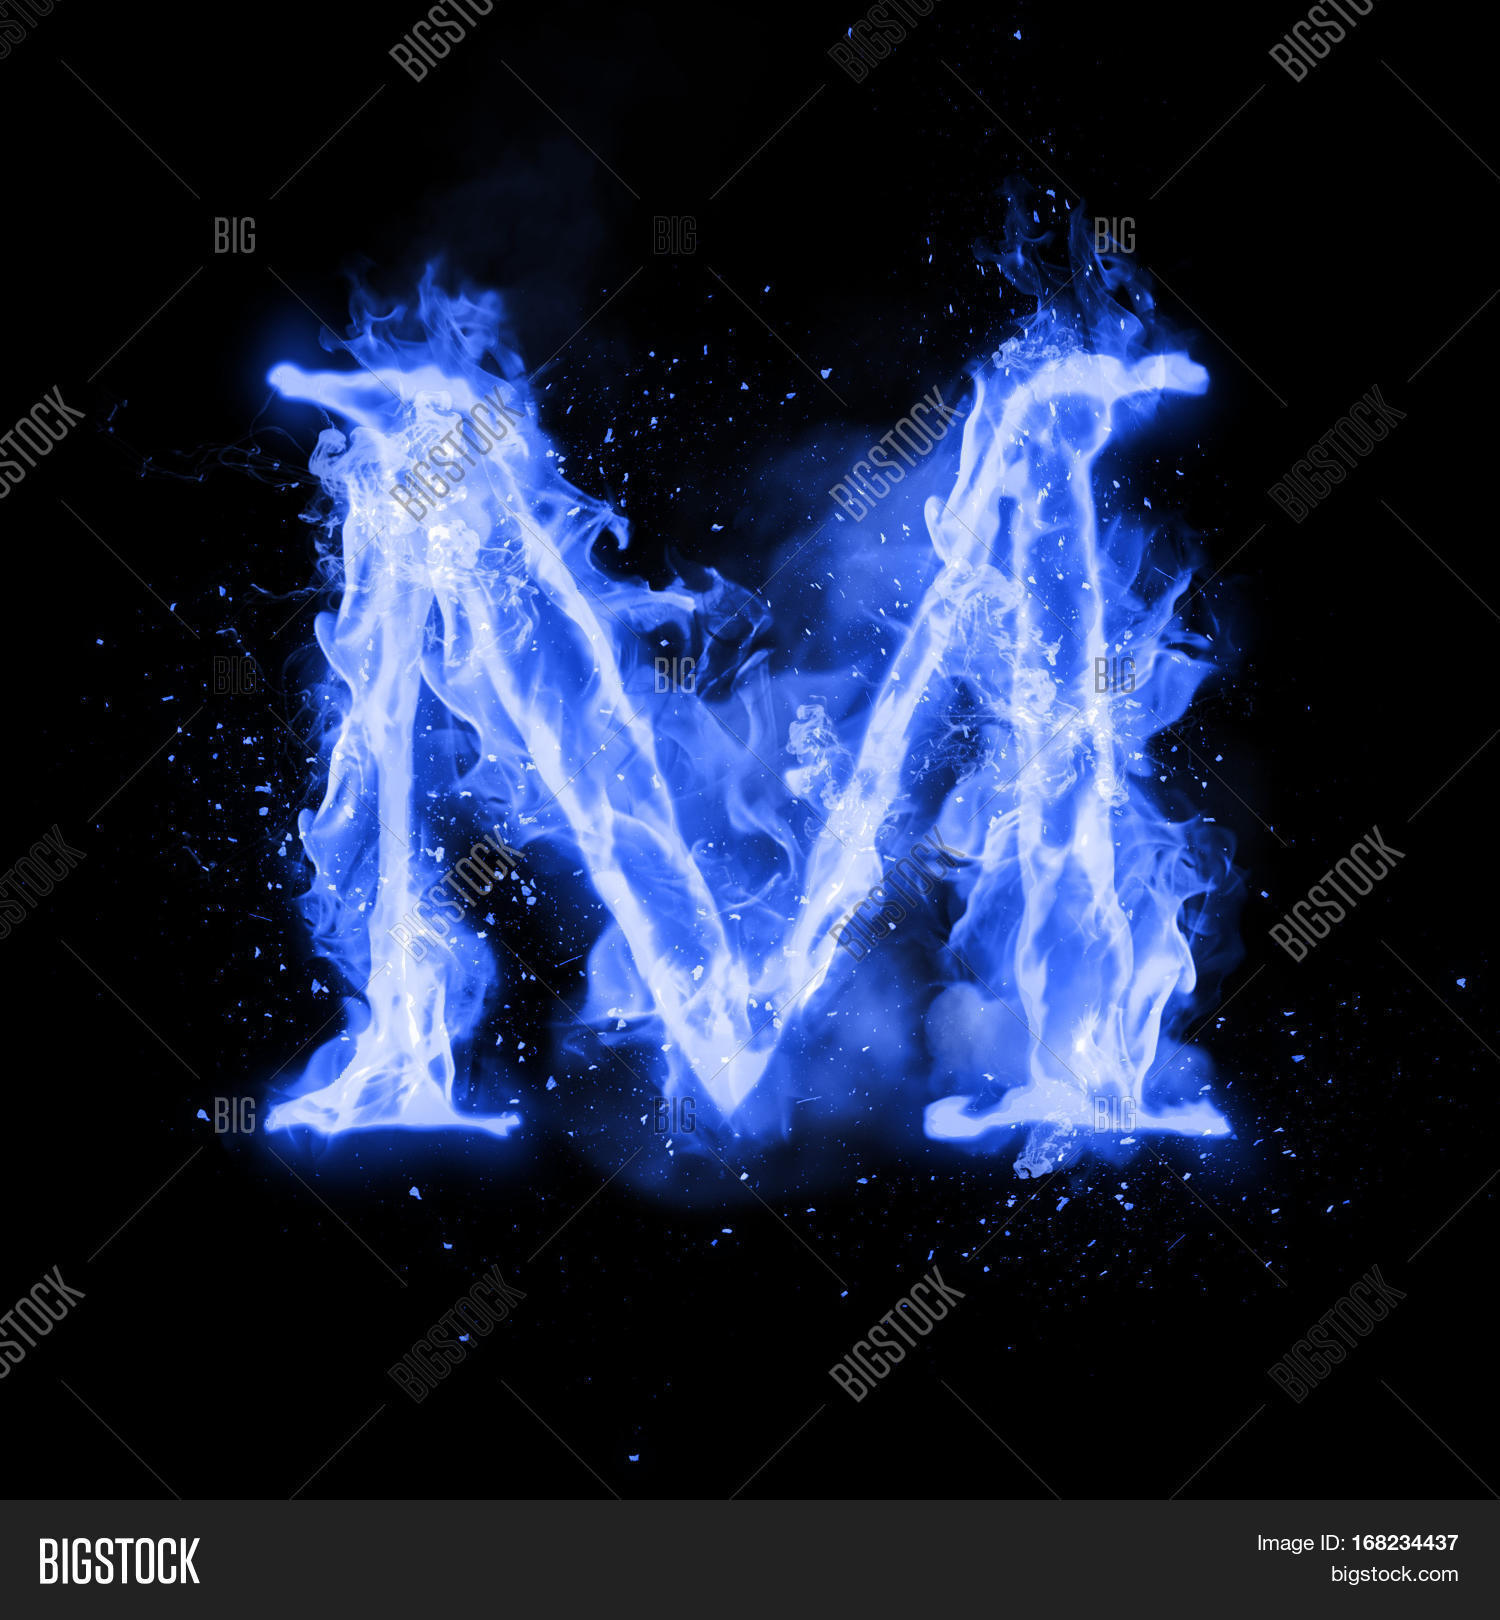 R Letter In Blue Fire The gallery for -->...